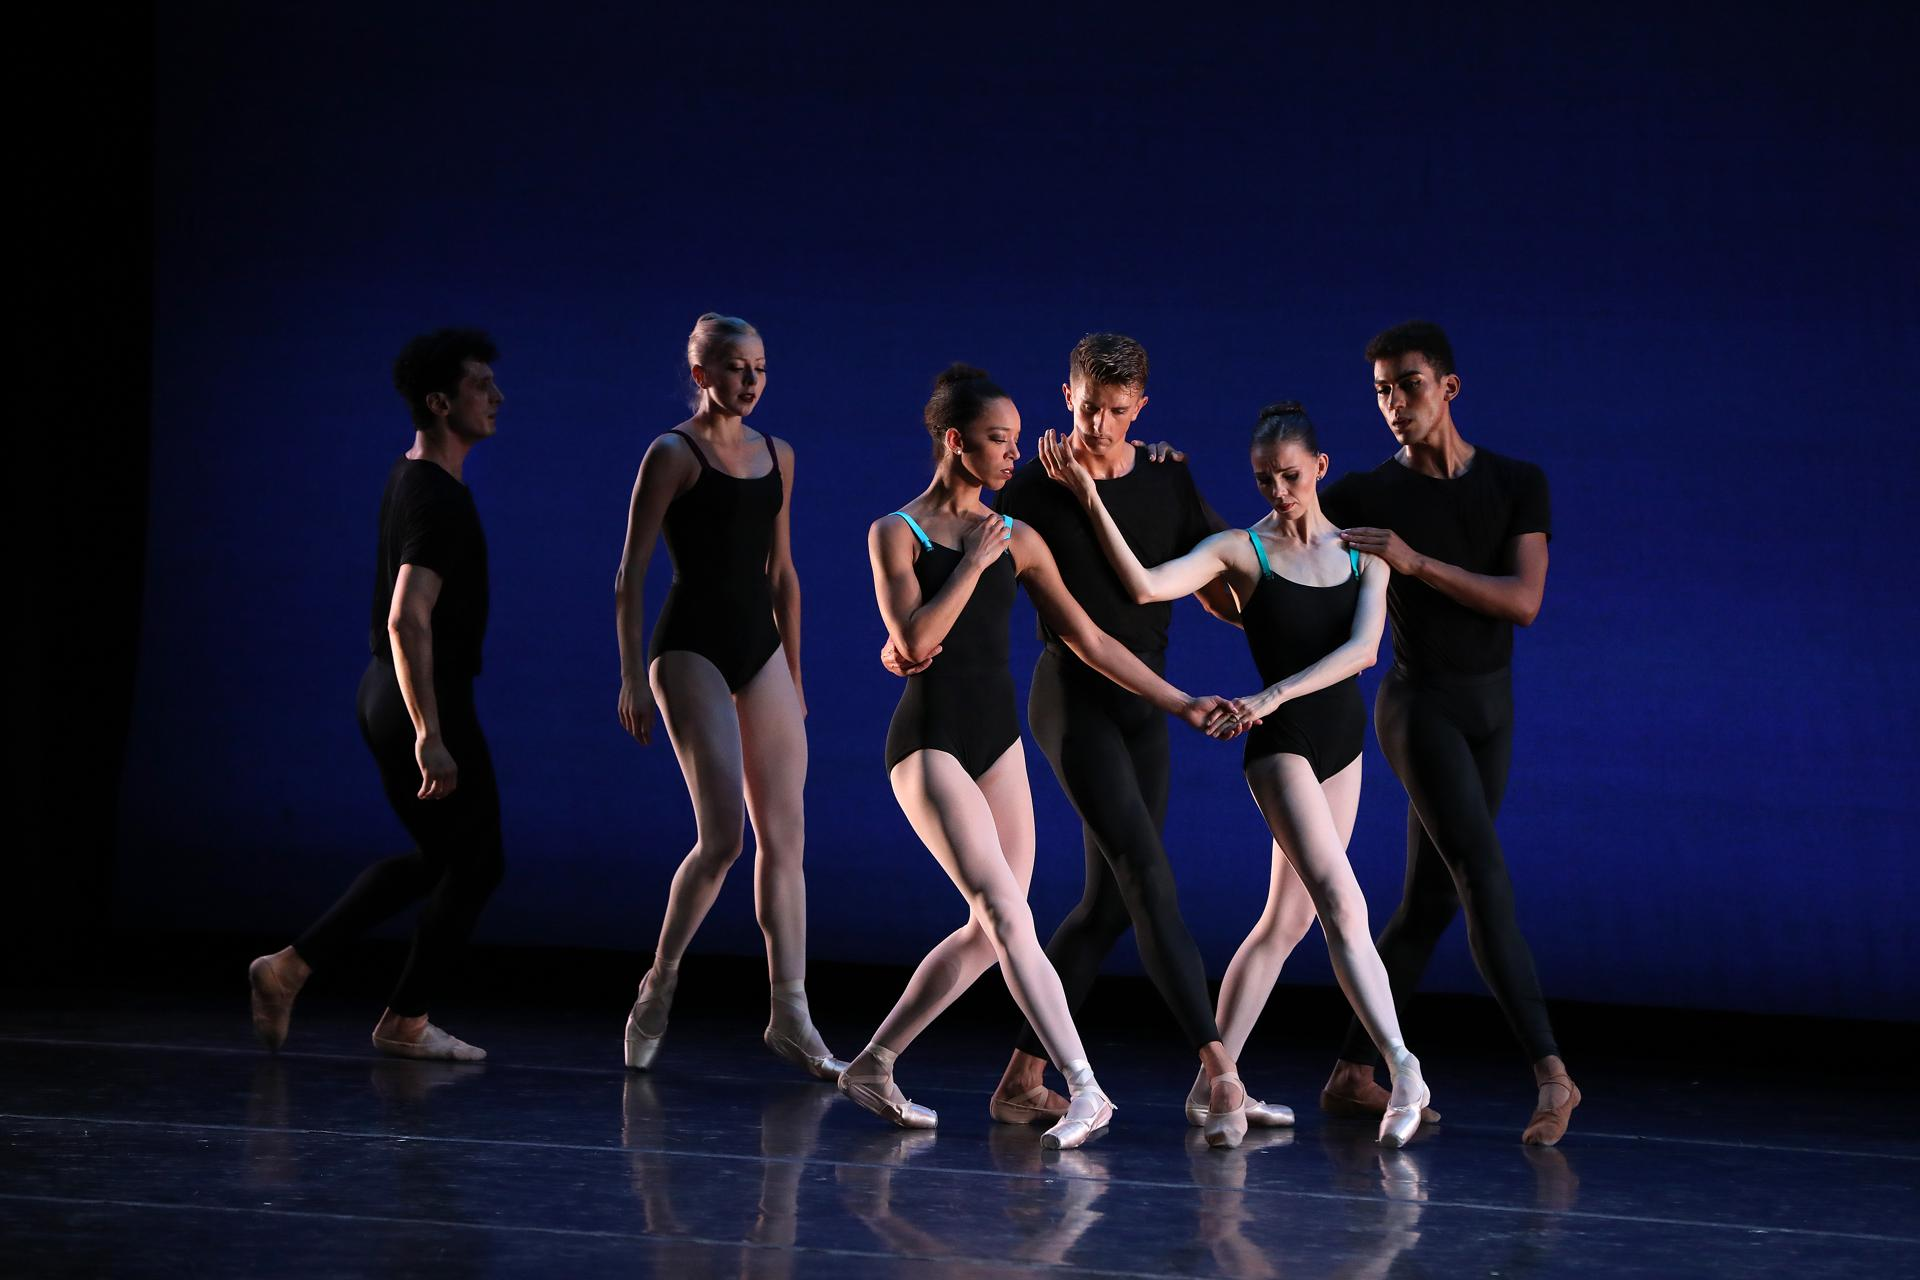 Becket, MA 8/24/19 Boston Ballet dancer Chyrstyn Fentroy (cq), center, performs in the company's